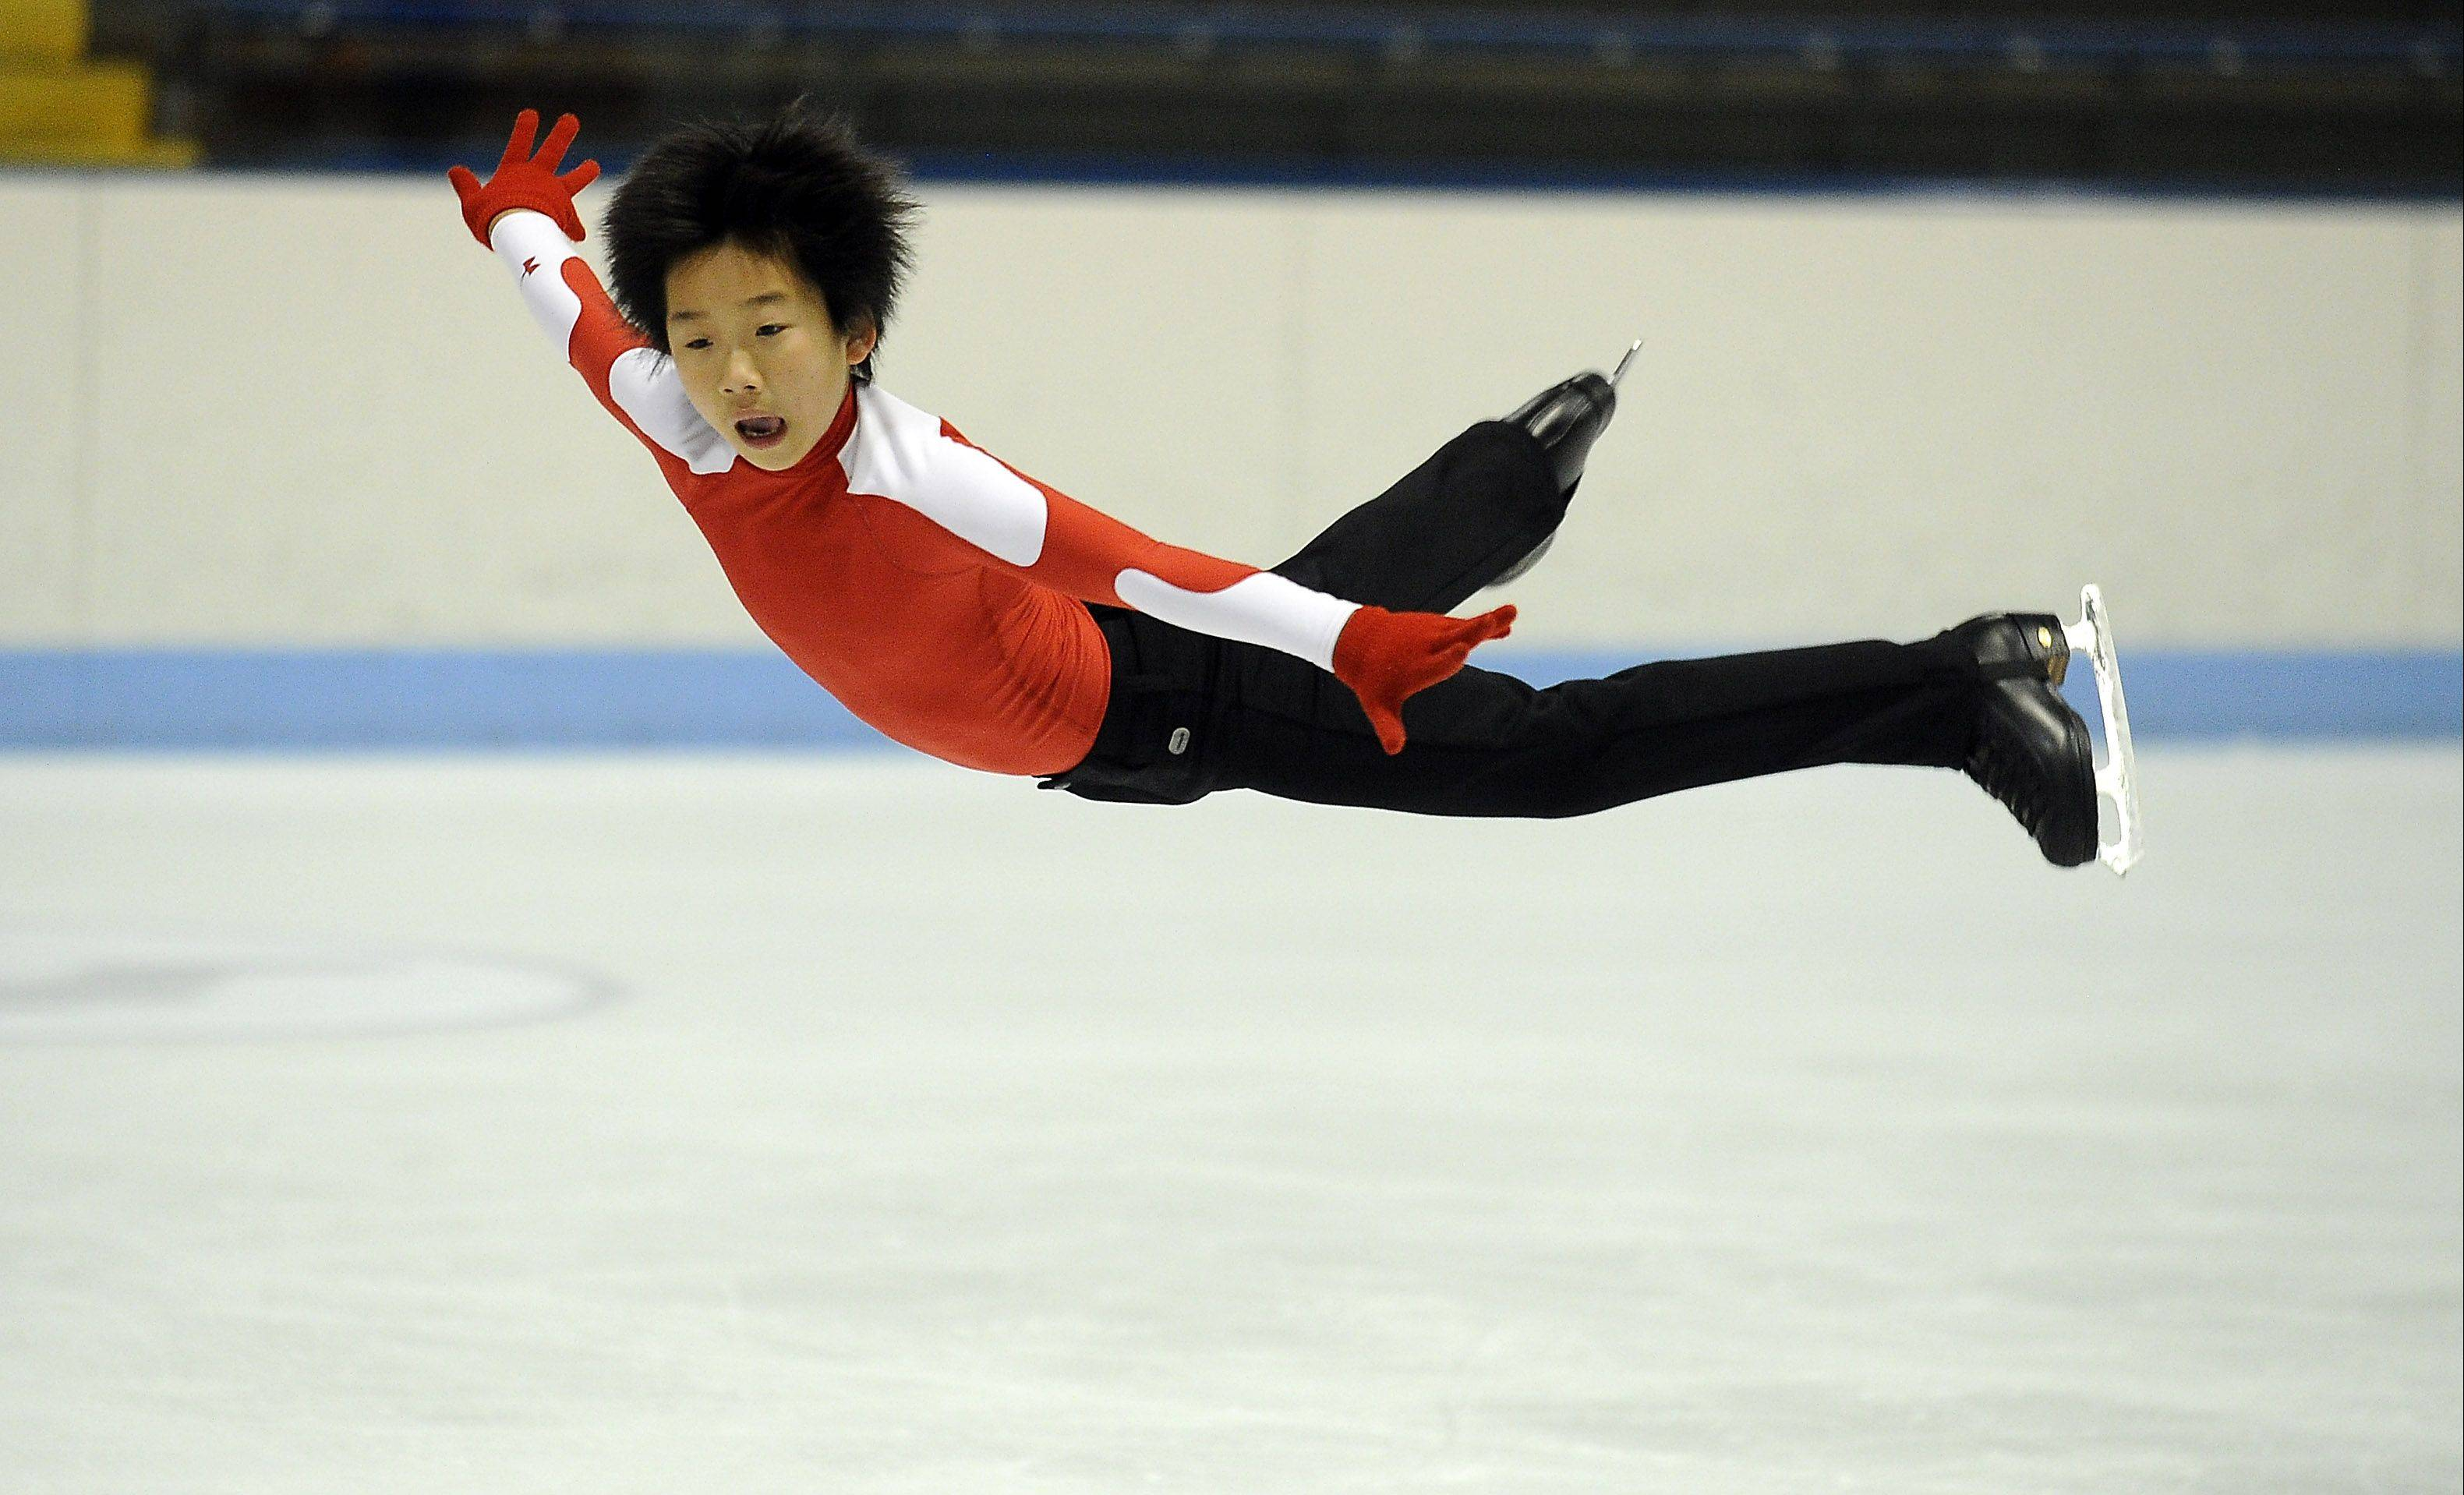 Hoffman Estates Olympic figure skating hopeful Tomoki Hiwatashi, 12, flies over the ice during a training session at the Centennial Ice Rink in Wilmette.